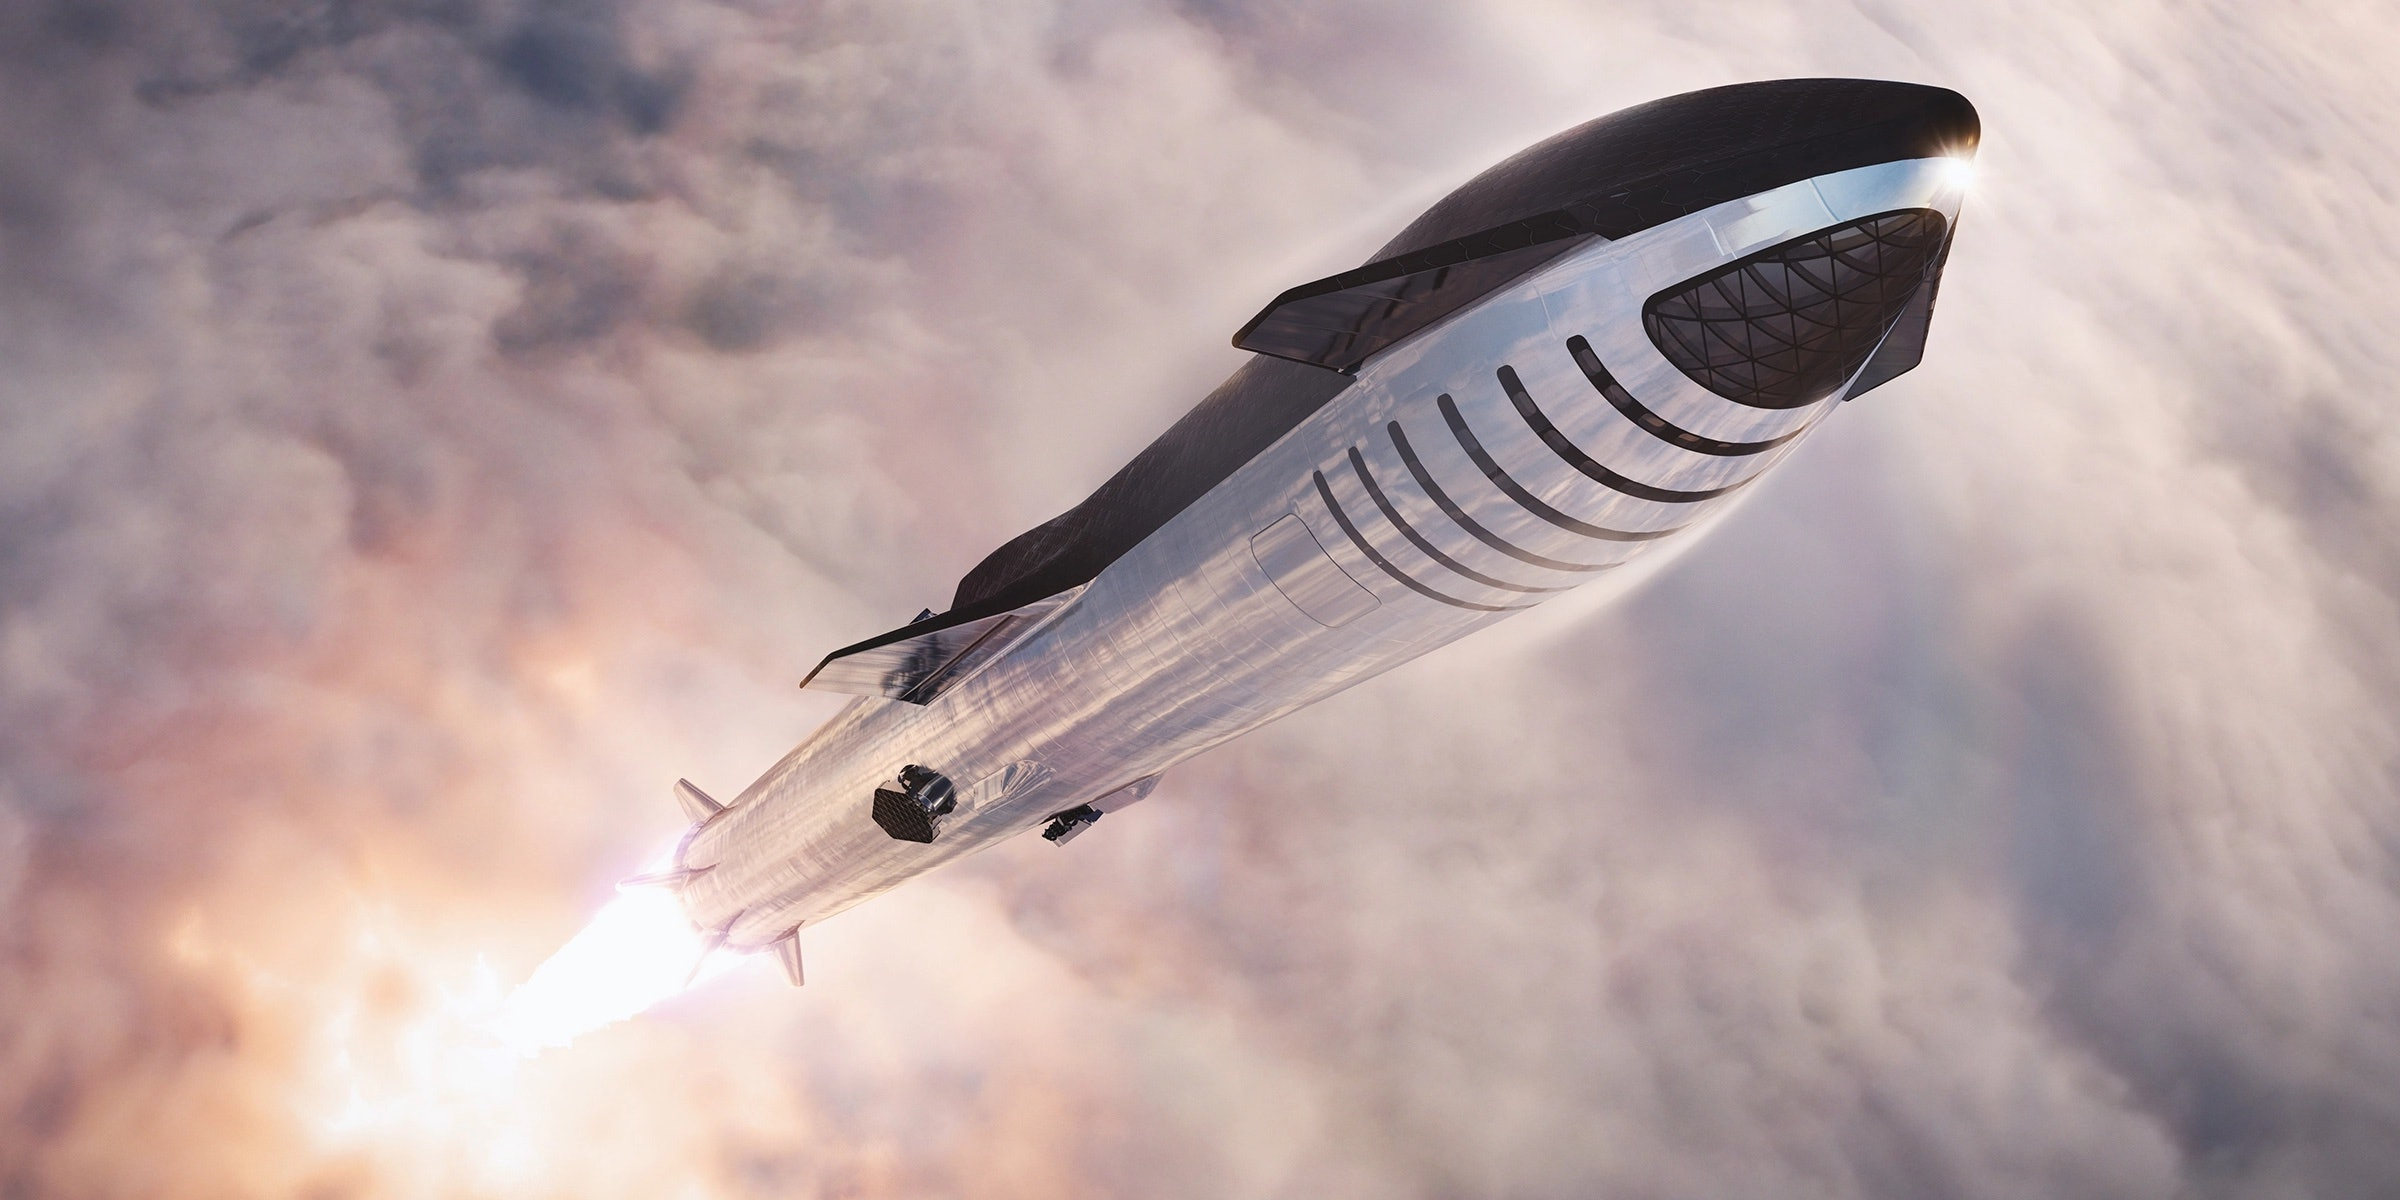 Spacex Starship Elon Musk Outlines Plans For 60 000 Foot Launch